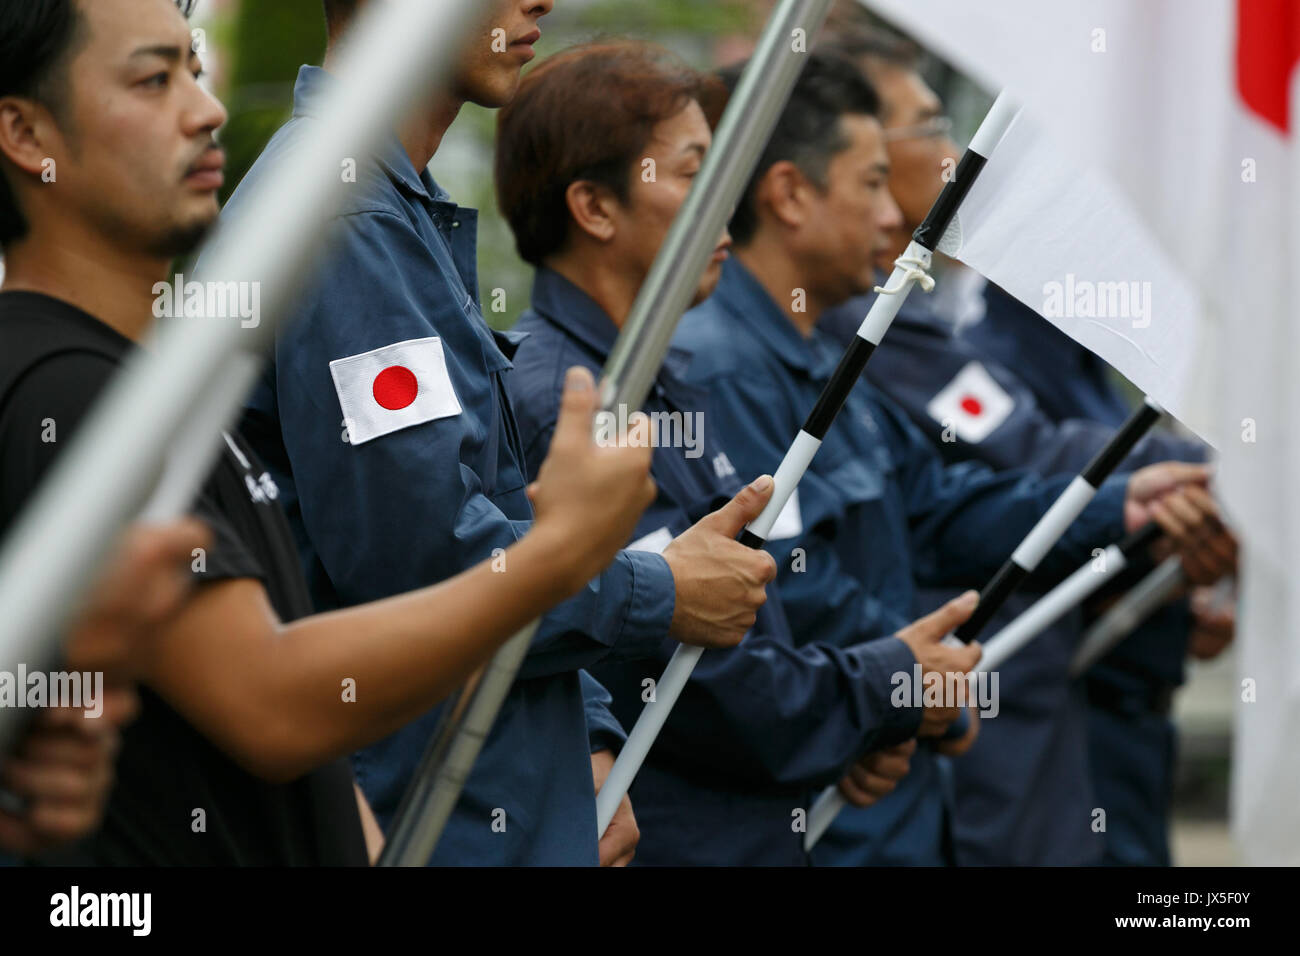 Tokyo, Japan. 15th Aug, 2017. Japanese nationalists dressed in military uniform hold war flags of the Imperial Japanese - Stock Image